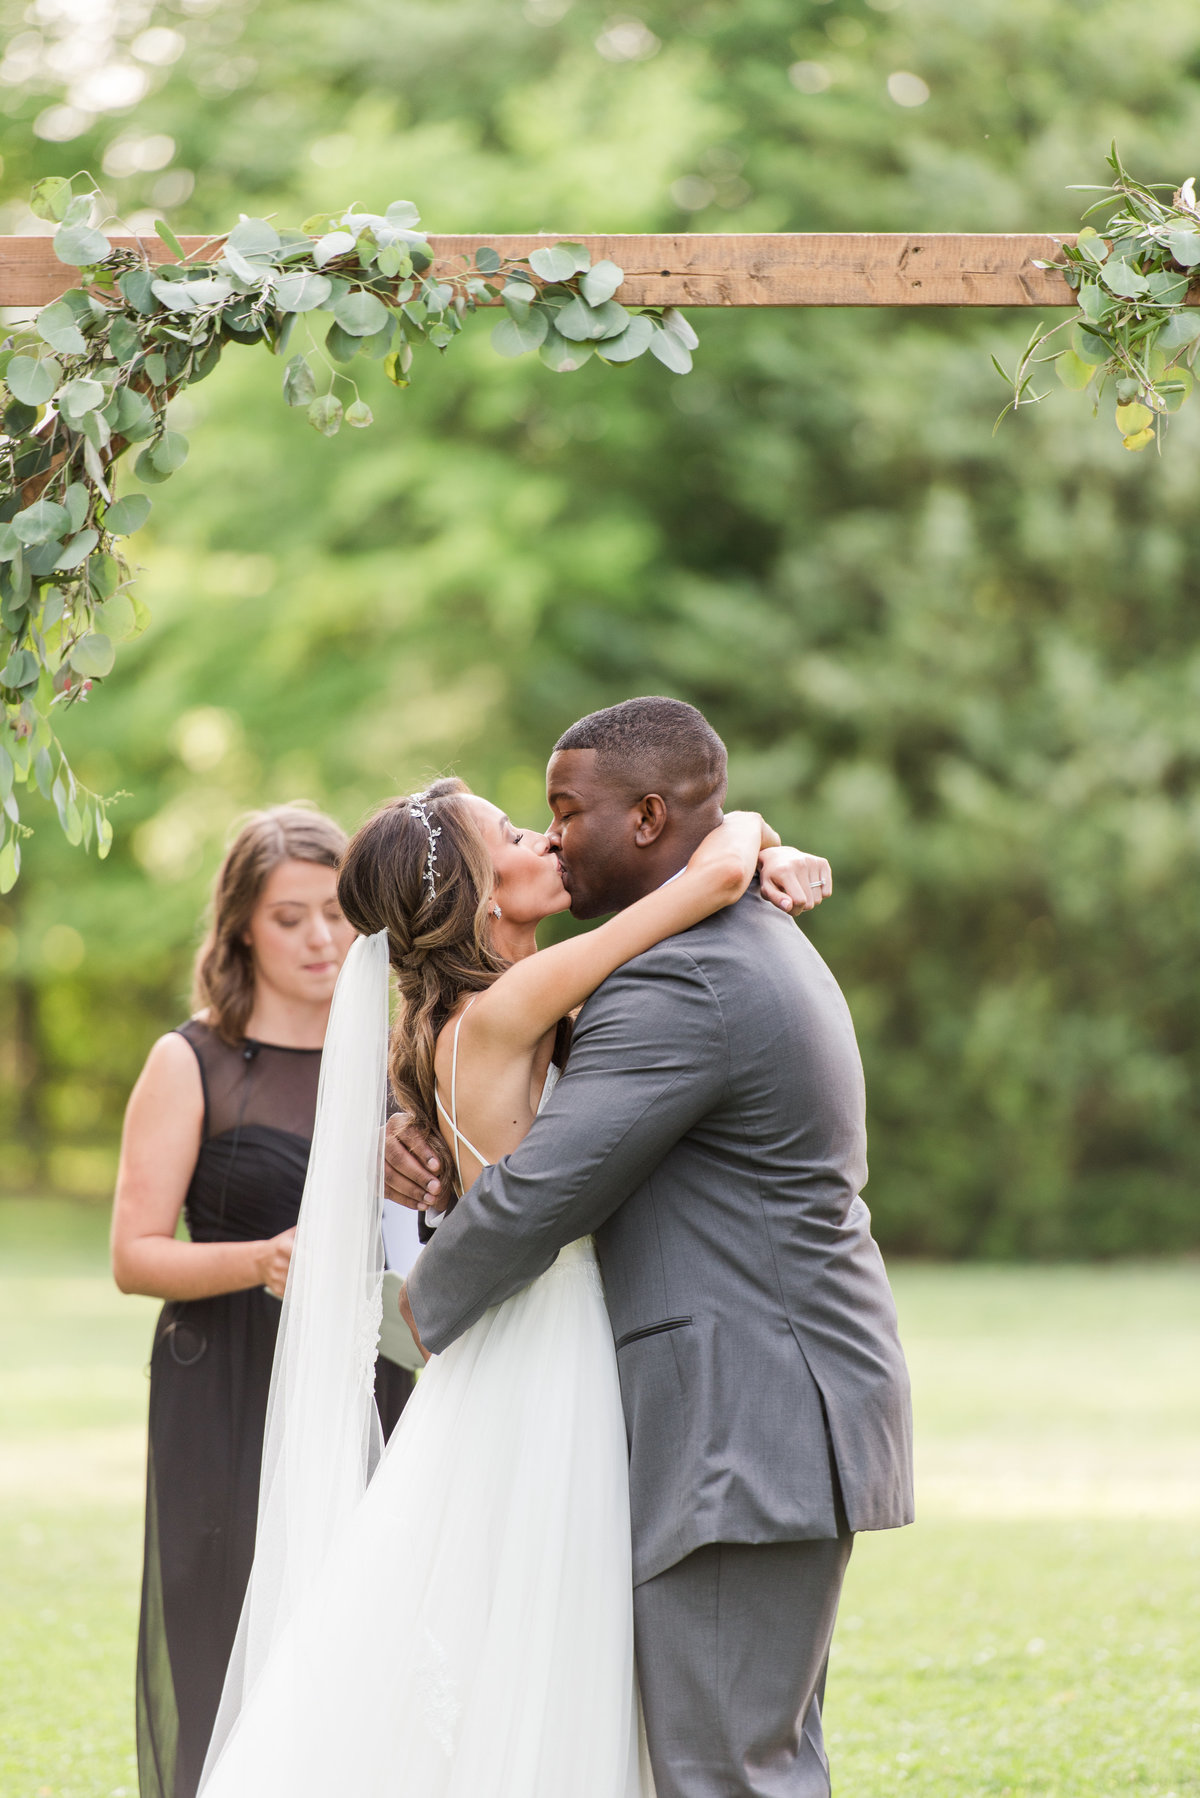 First kiss at heritage farm wedding